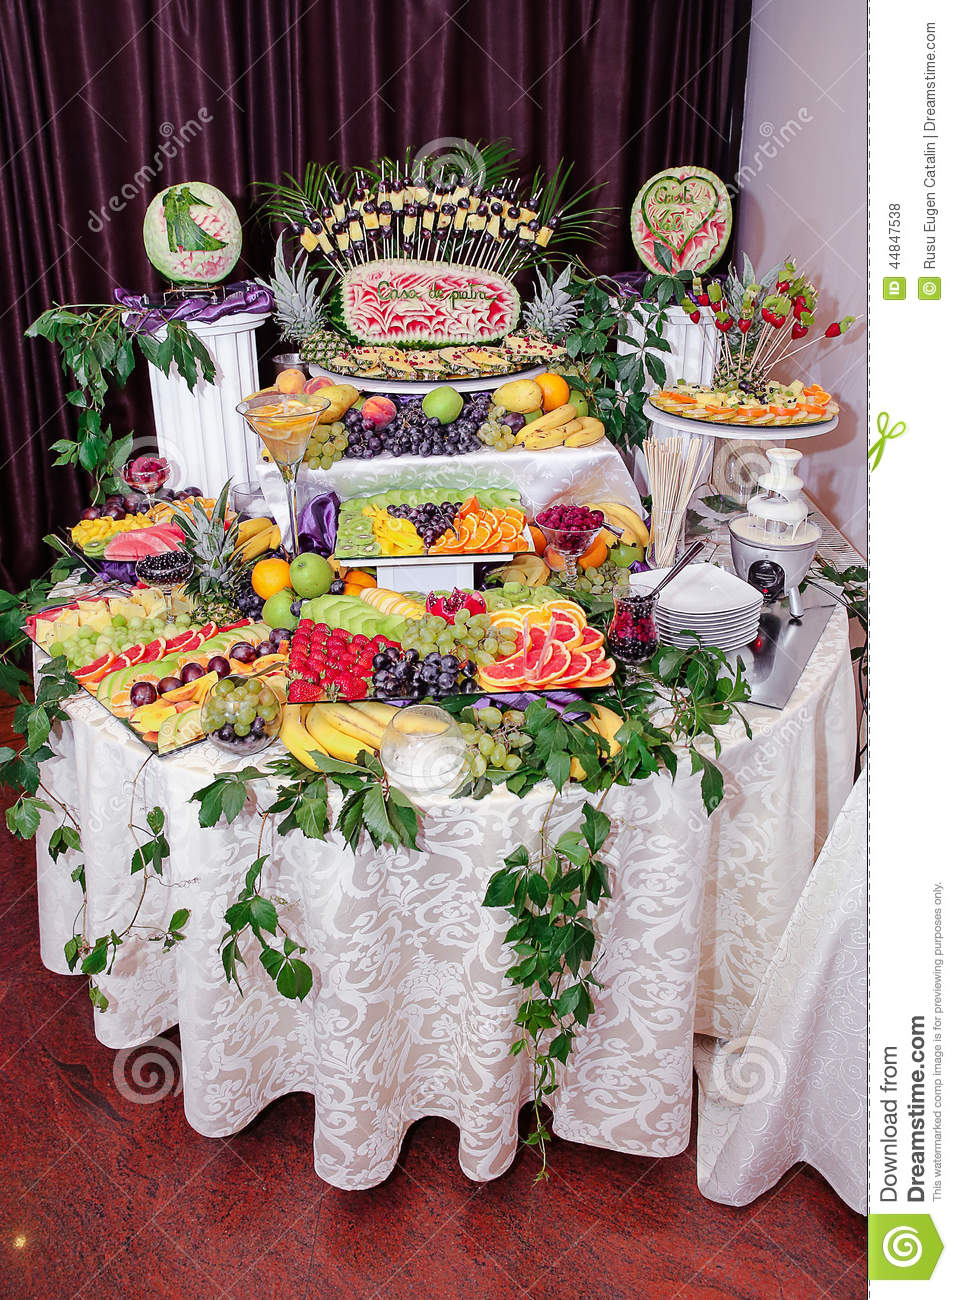 Fruits Decoration Stock Photo Image Of Pasteles